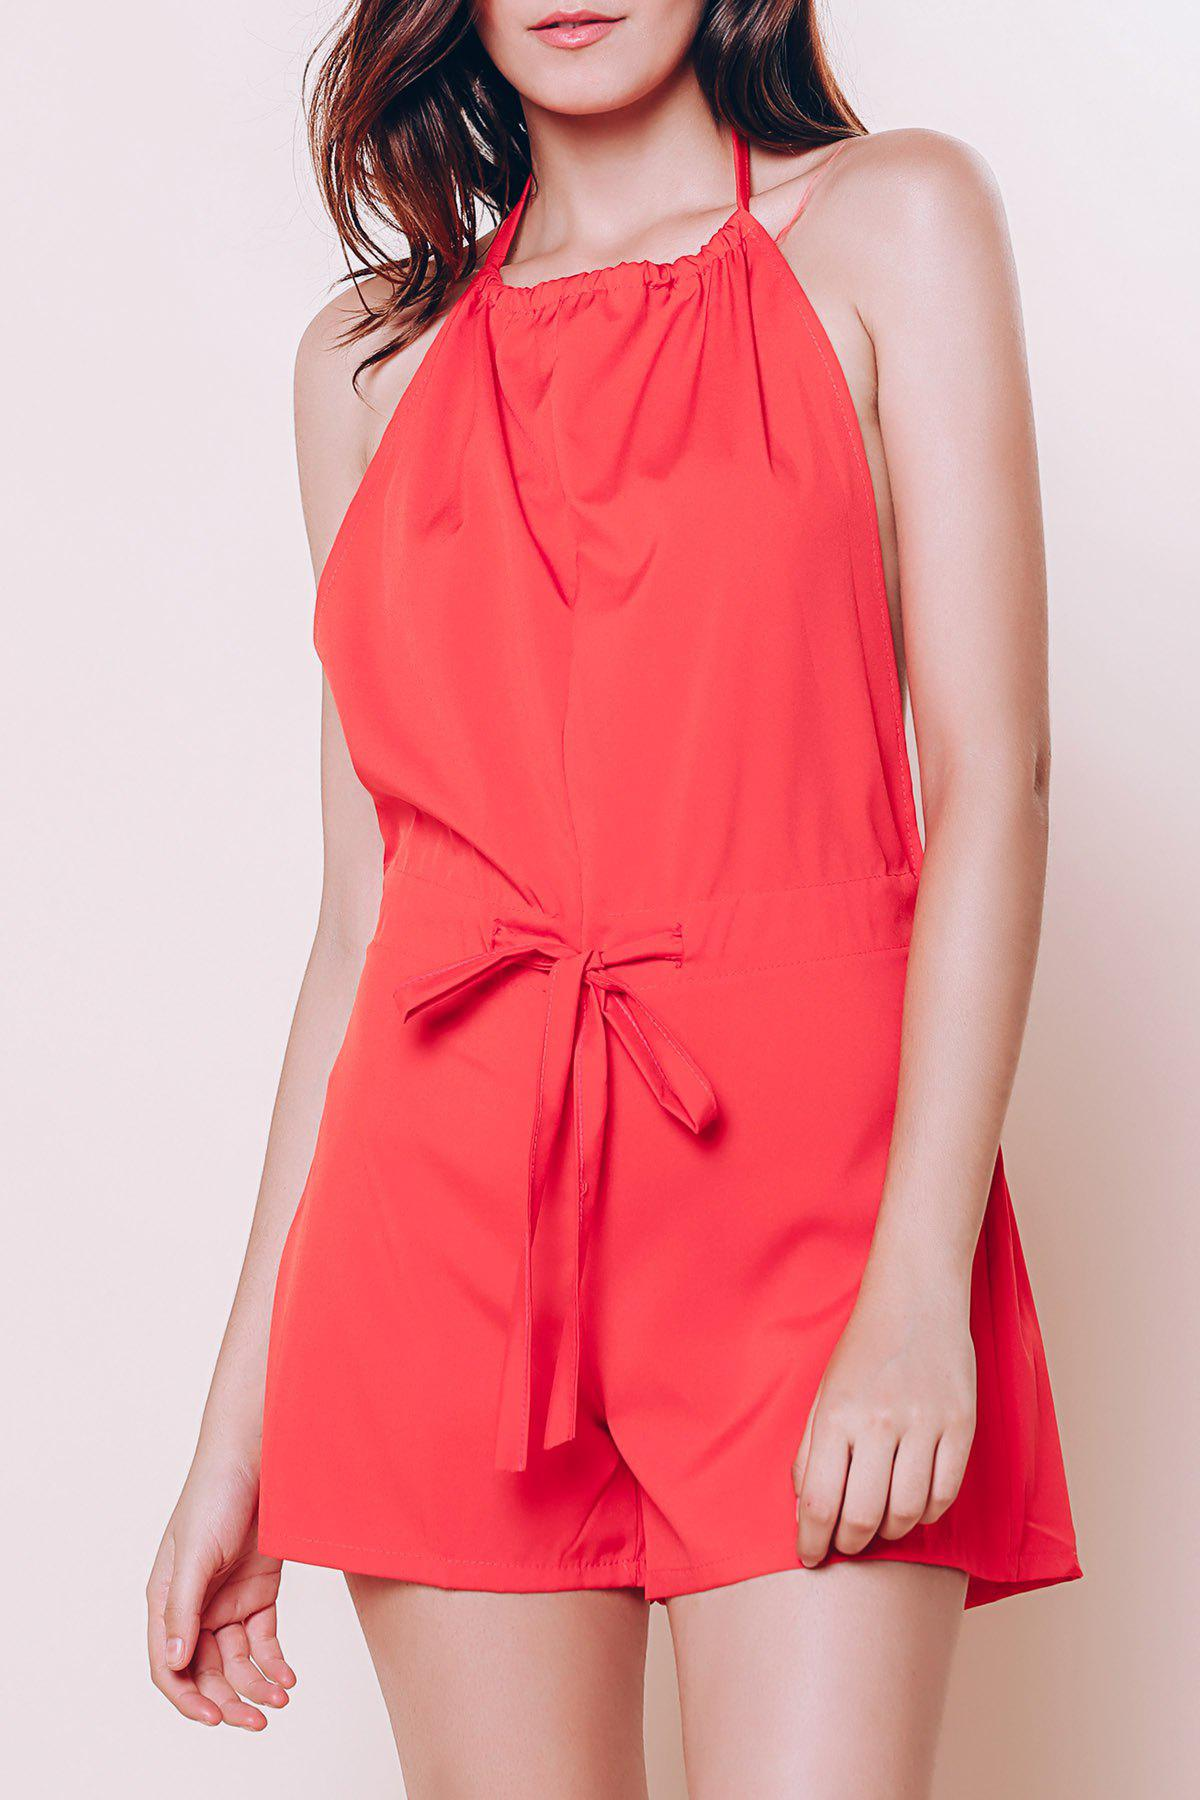 Trendy Sleeveless Backless Halter Red Romper For Women - RED S